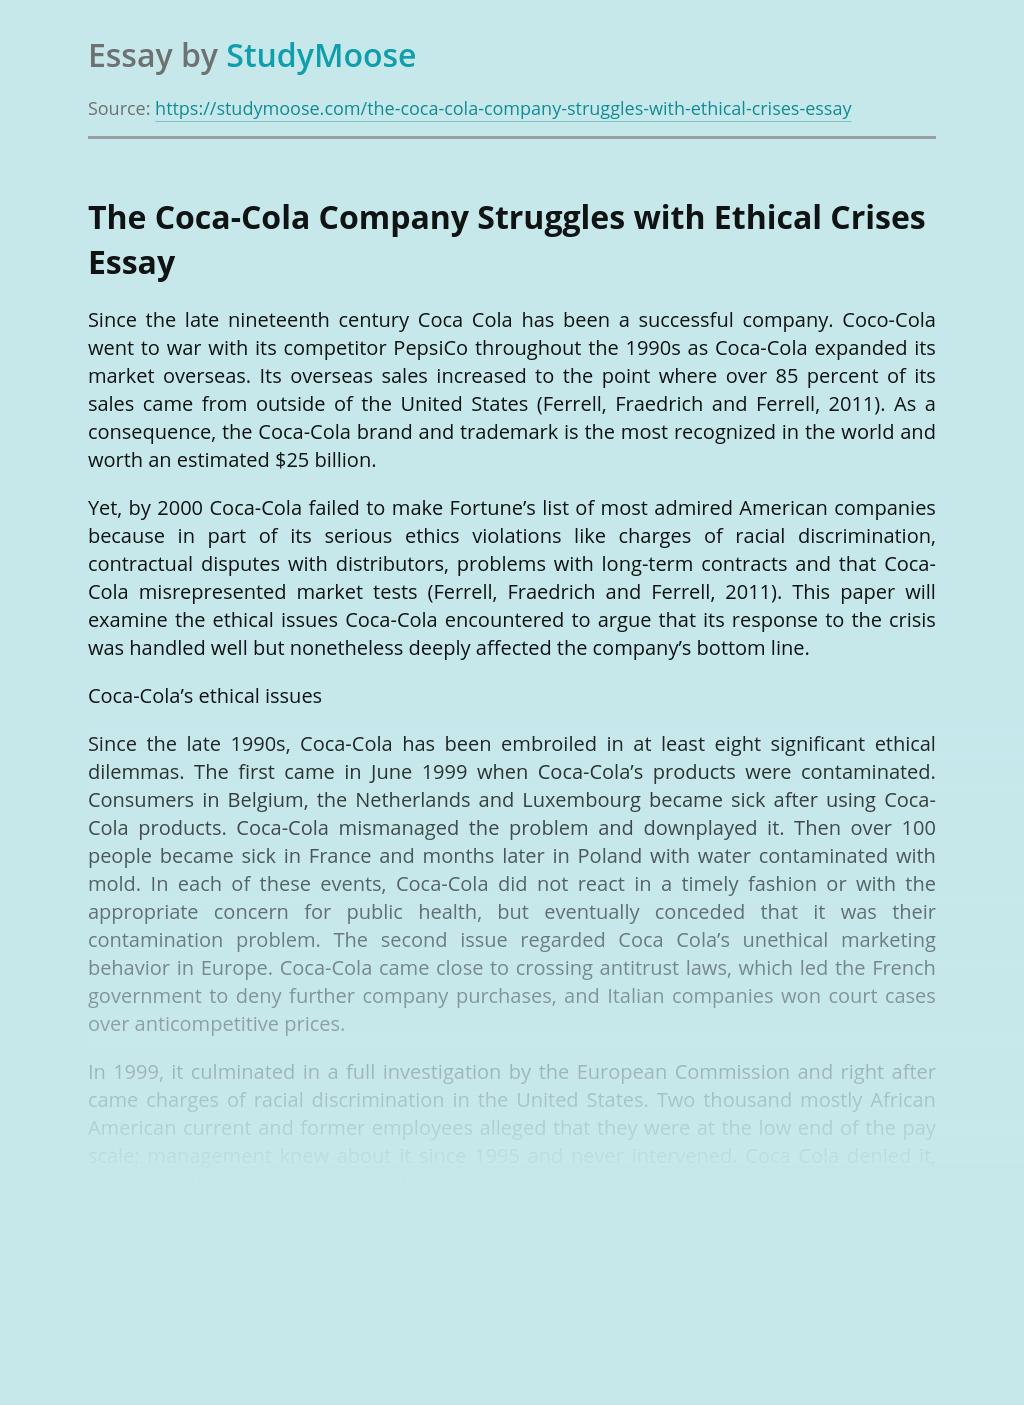 The Coca-Cola Company Struggles with Ethical Crises